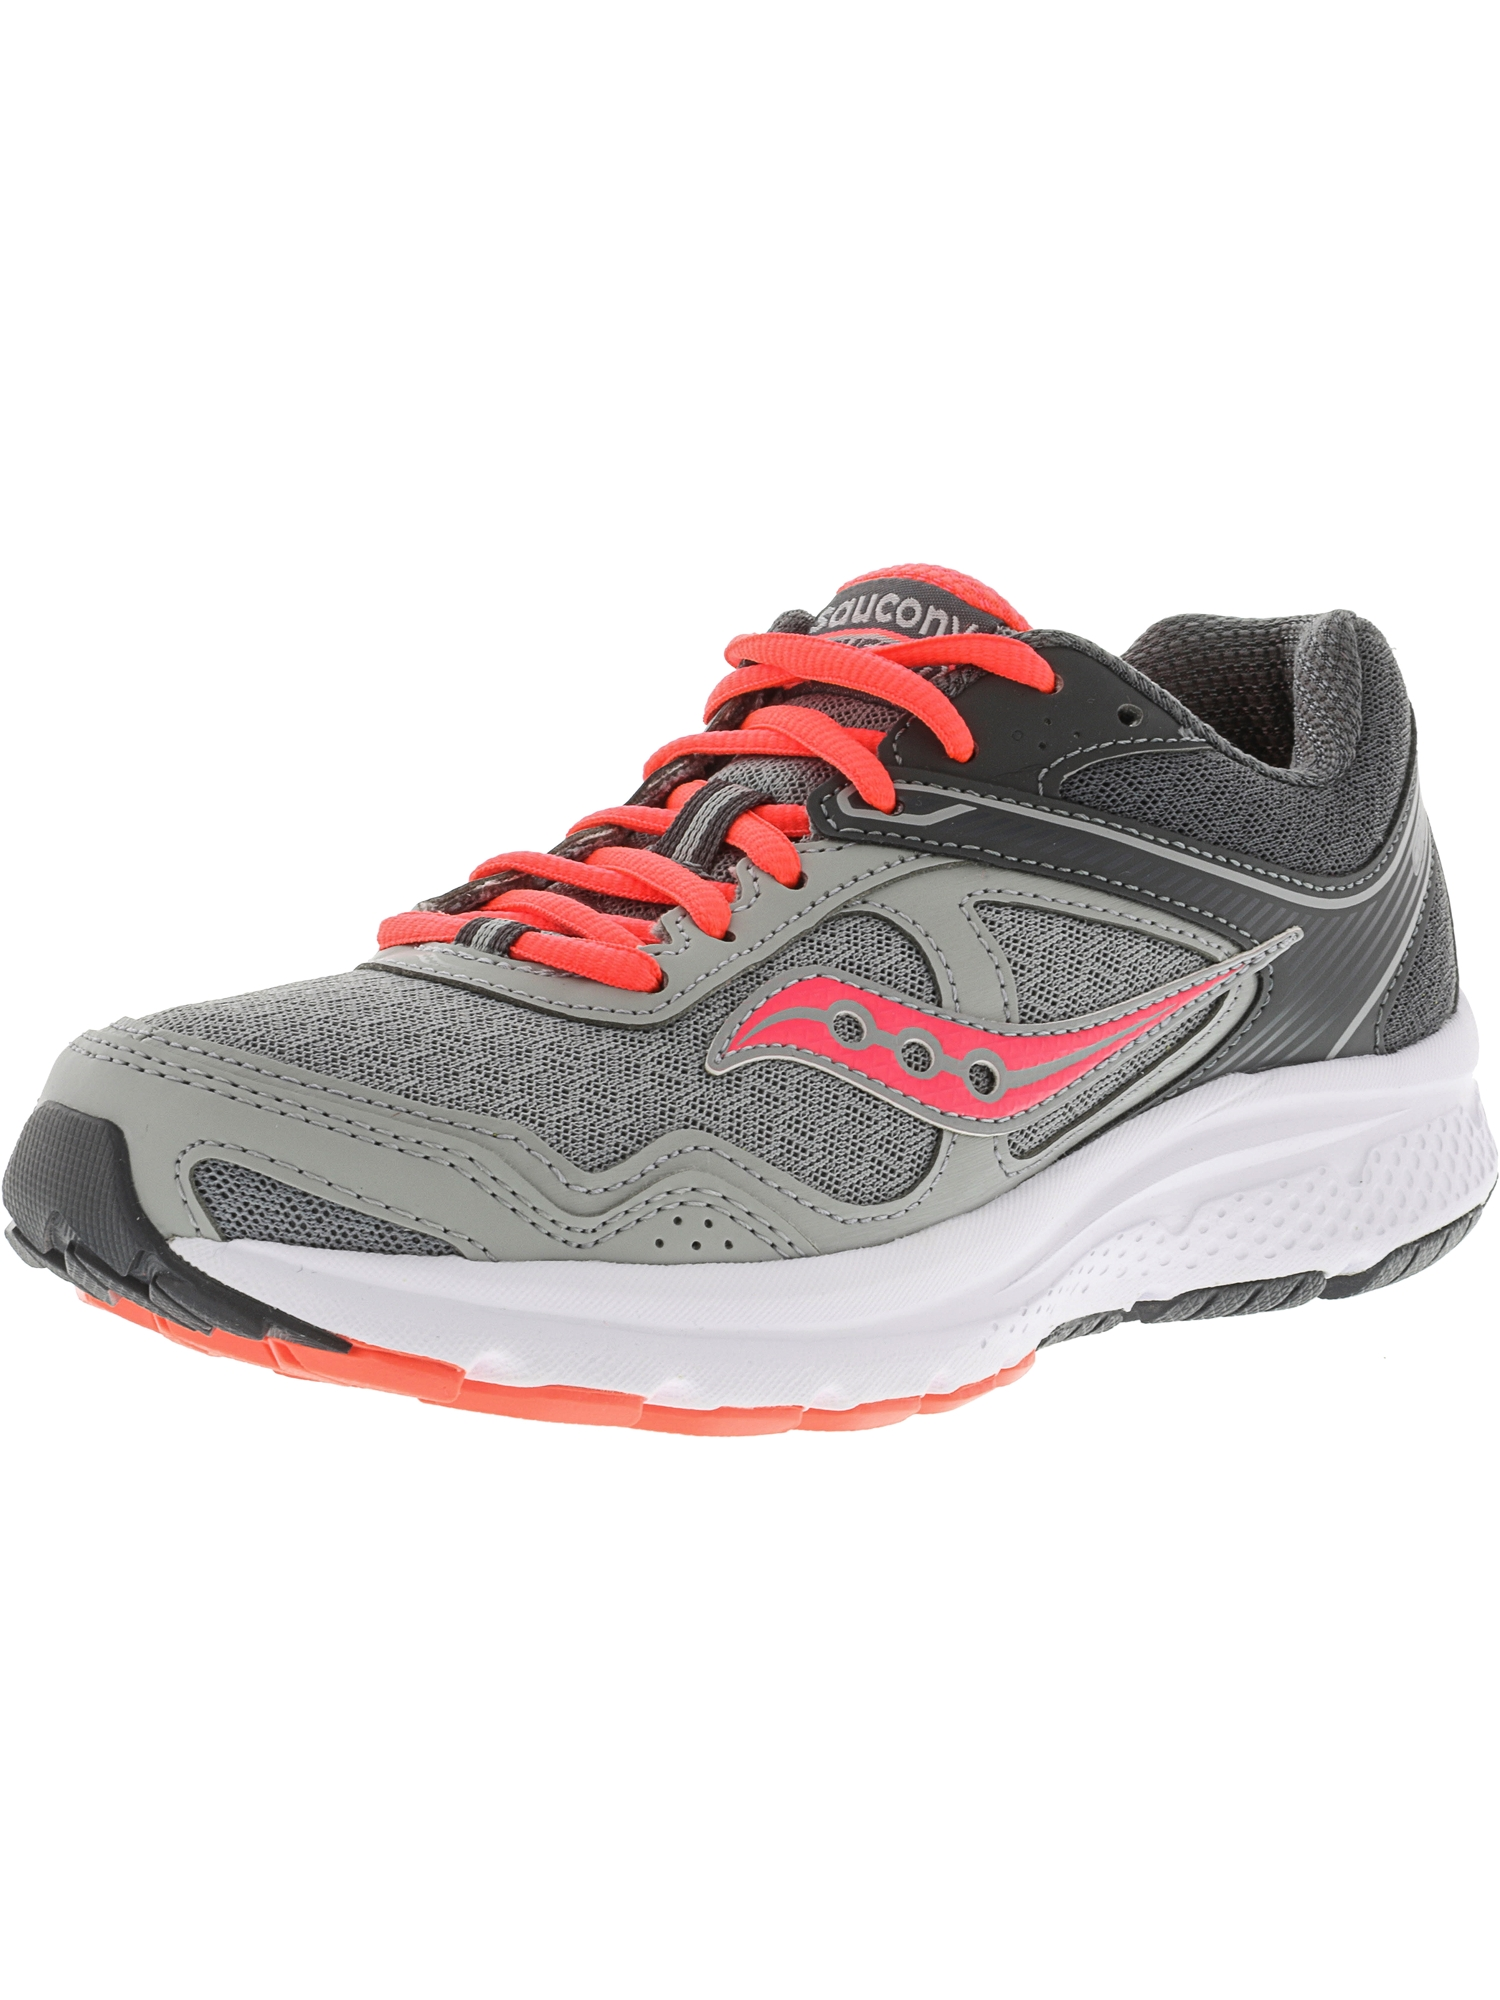 Women's Grid Cohesion 10 Grey / Coral Ankle-High Running Shoe - 10M